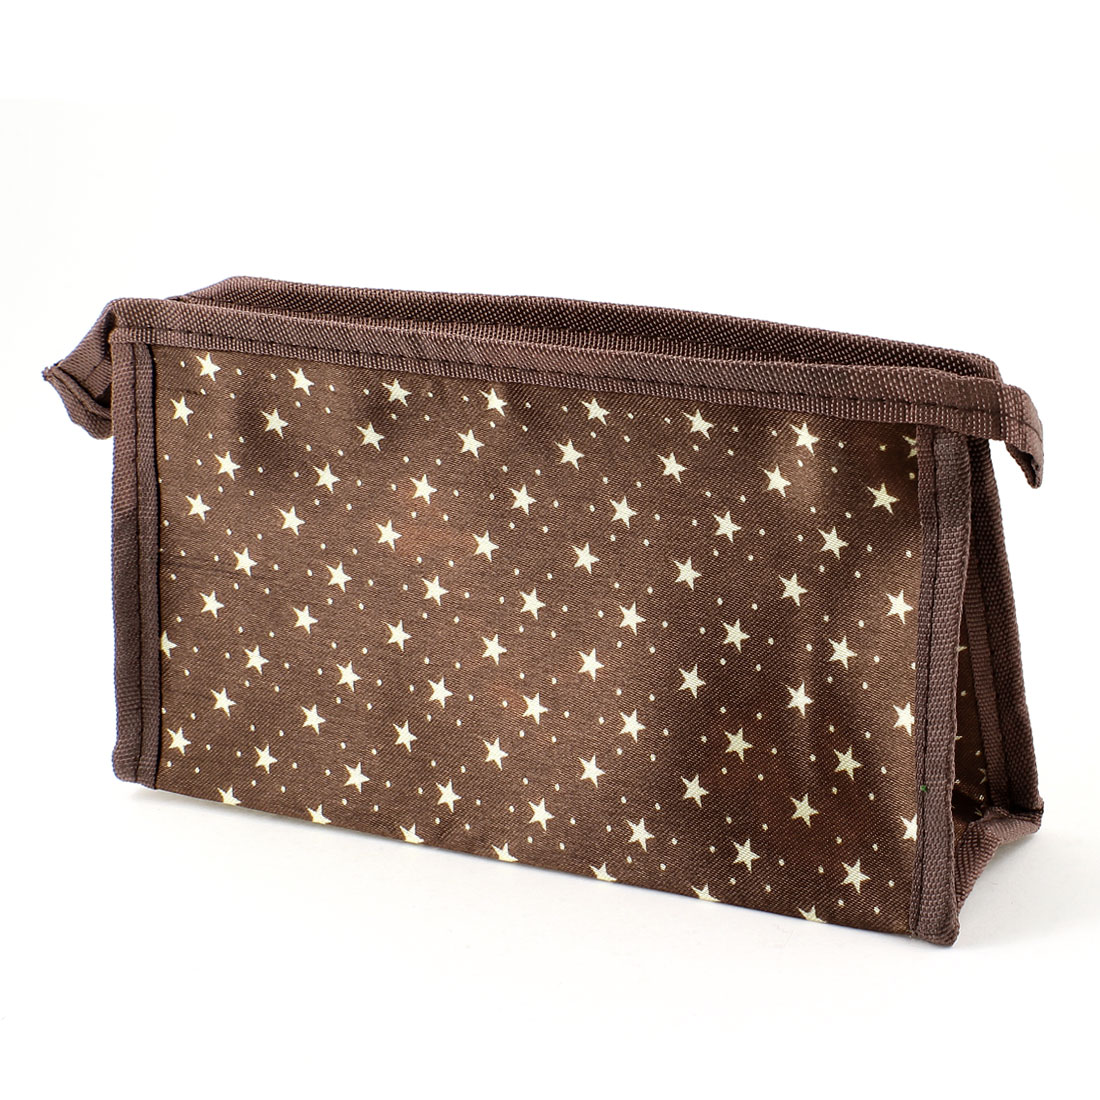 Off White Pentagram Dots Printed Zip Up Brown Comestic Bag for Women